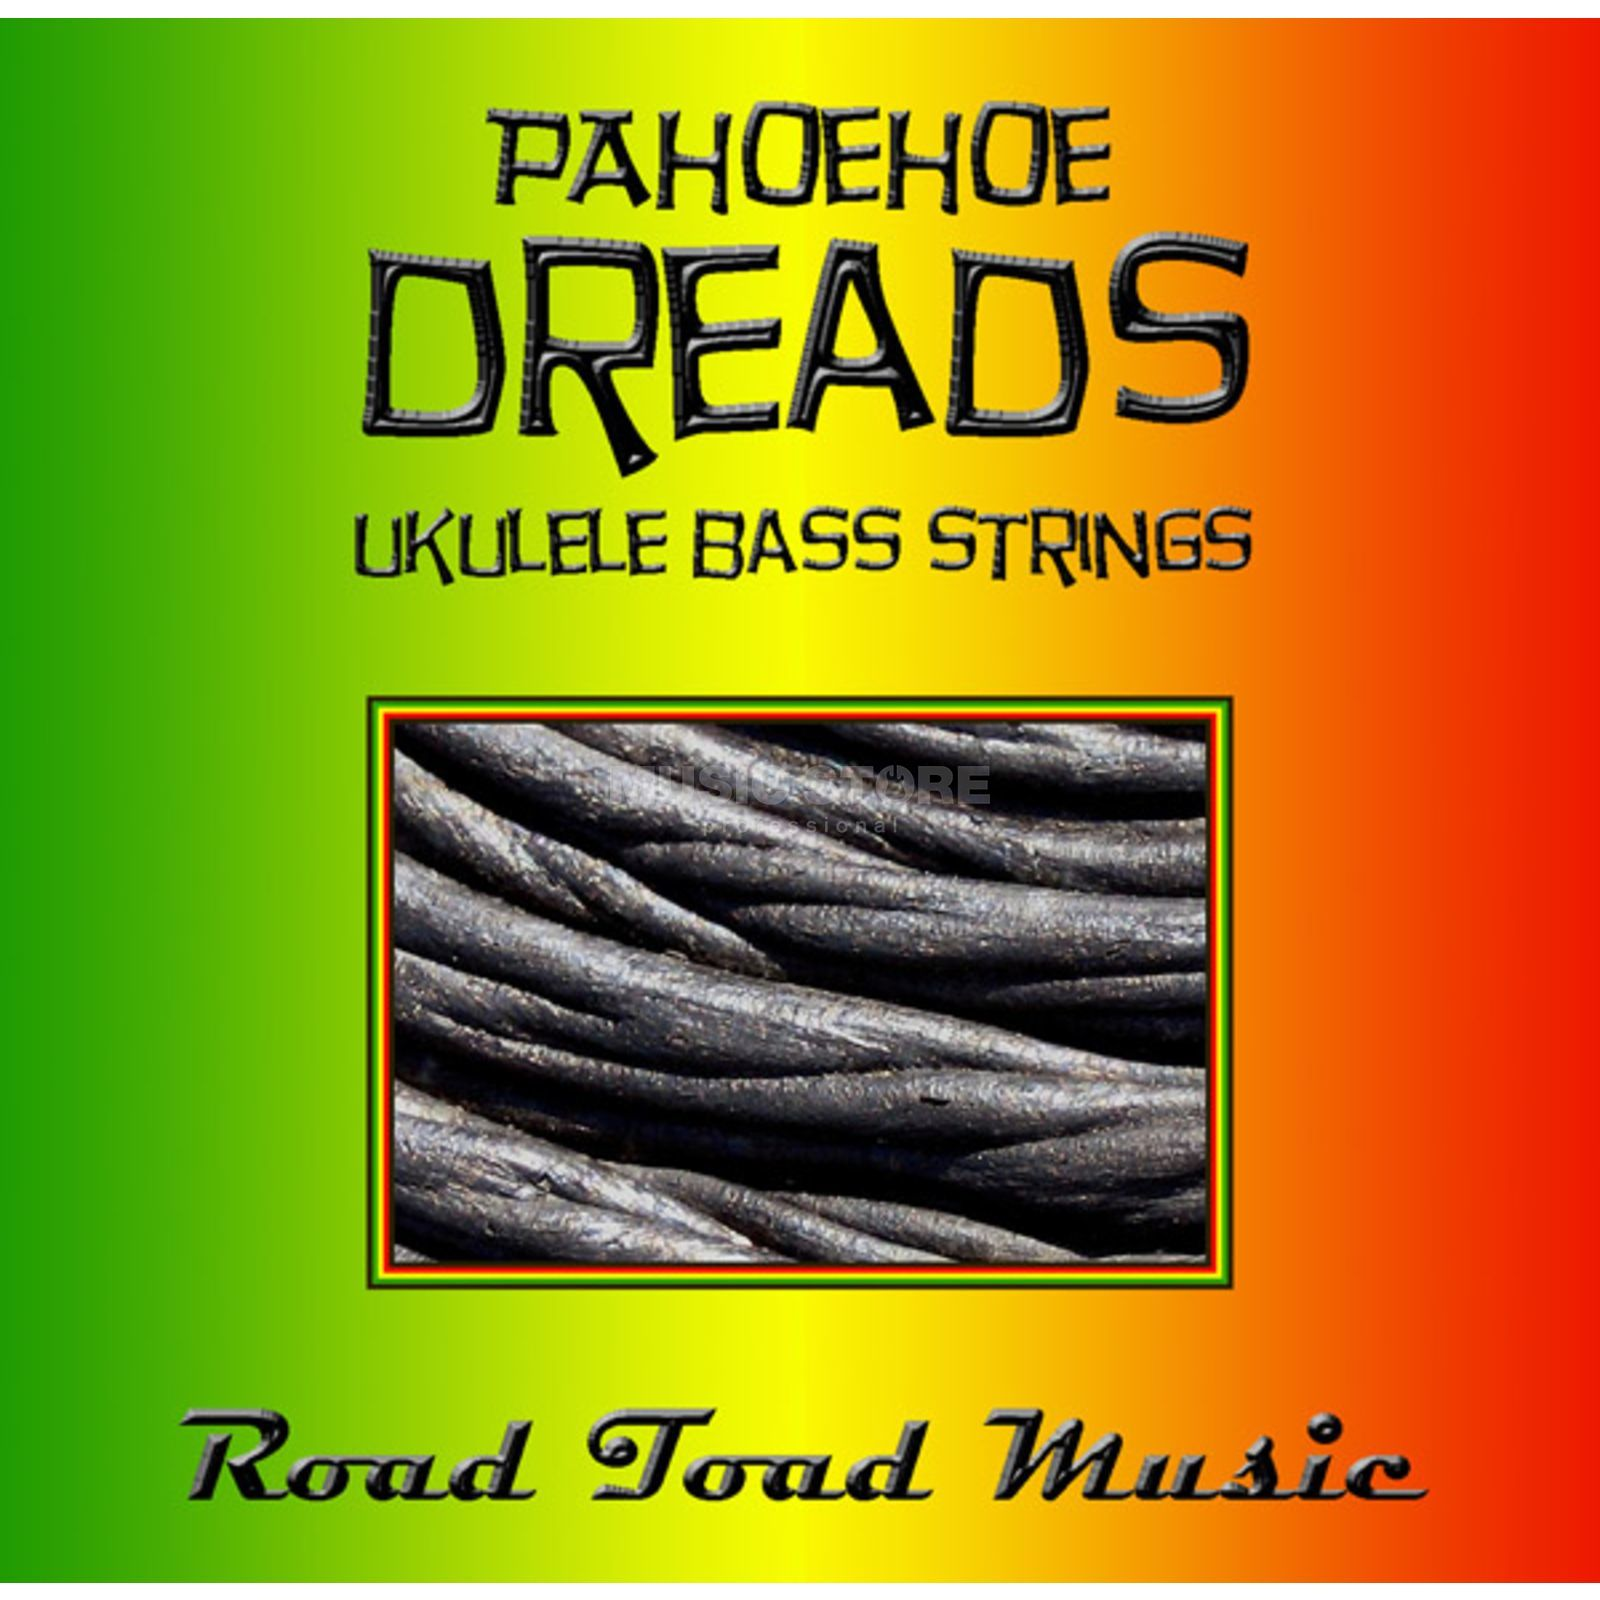 Road Toad Music U-Bass Pahoehoe Dread 4-String Black,Green,Yellow,Red Produktbild